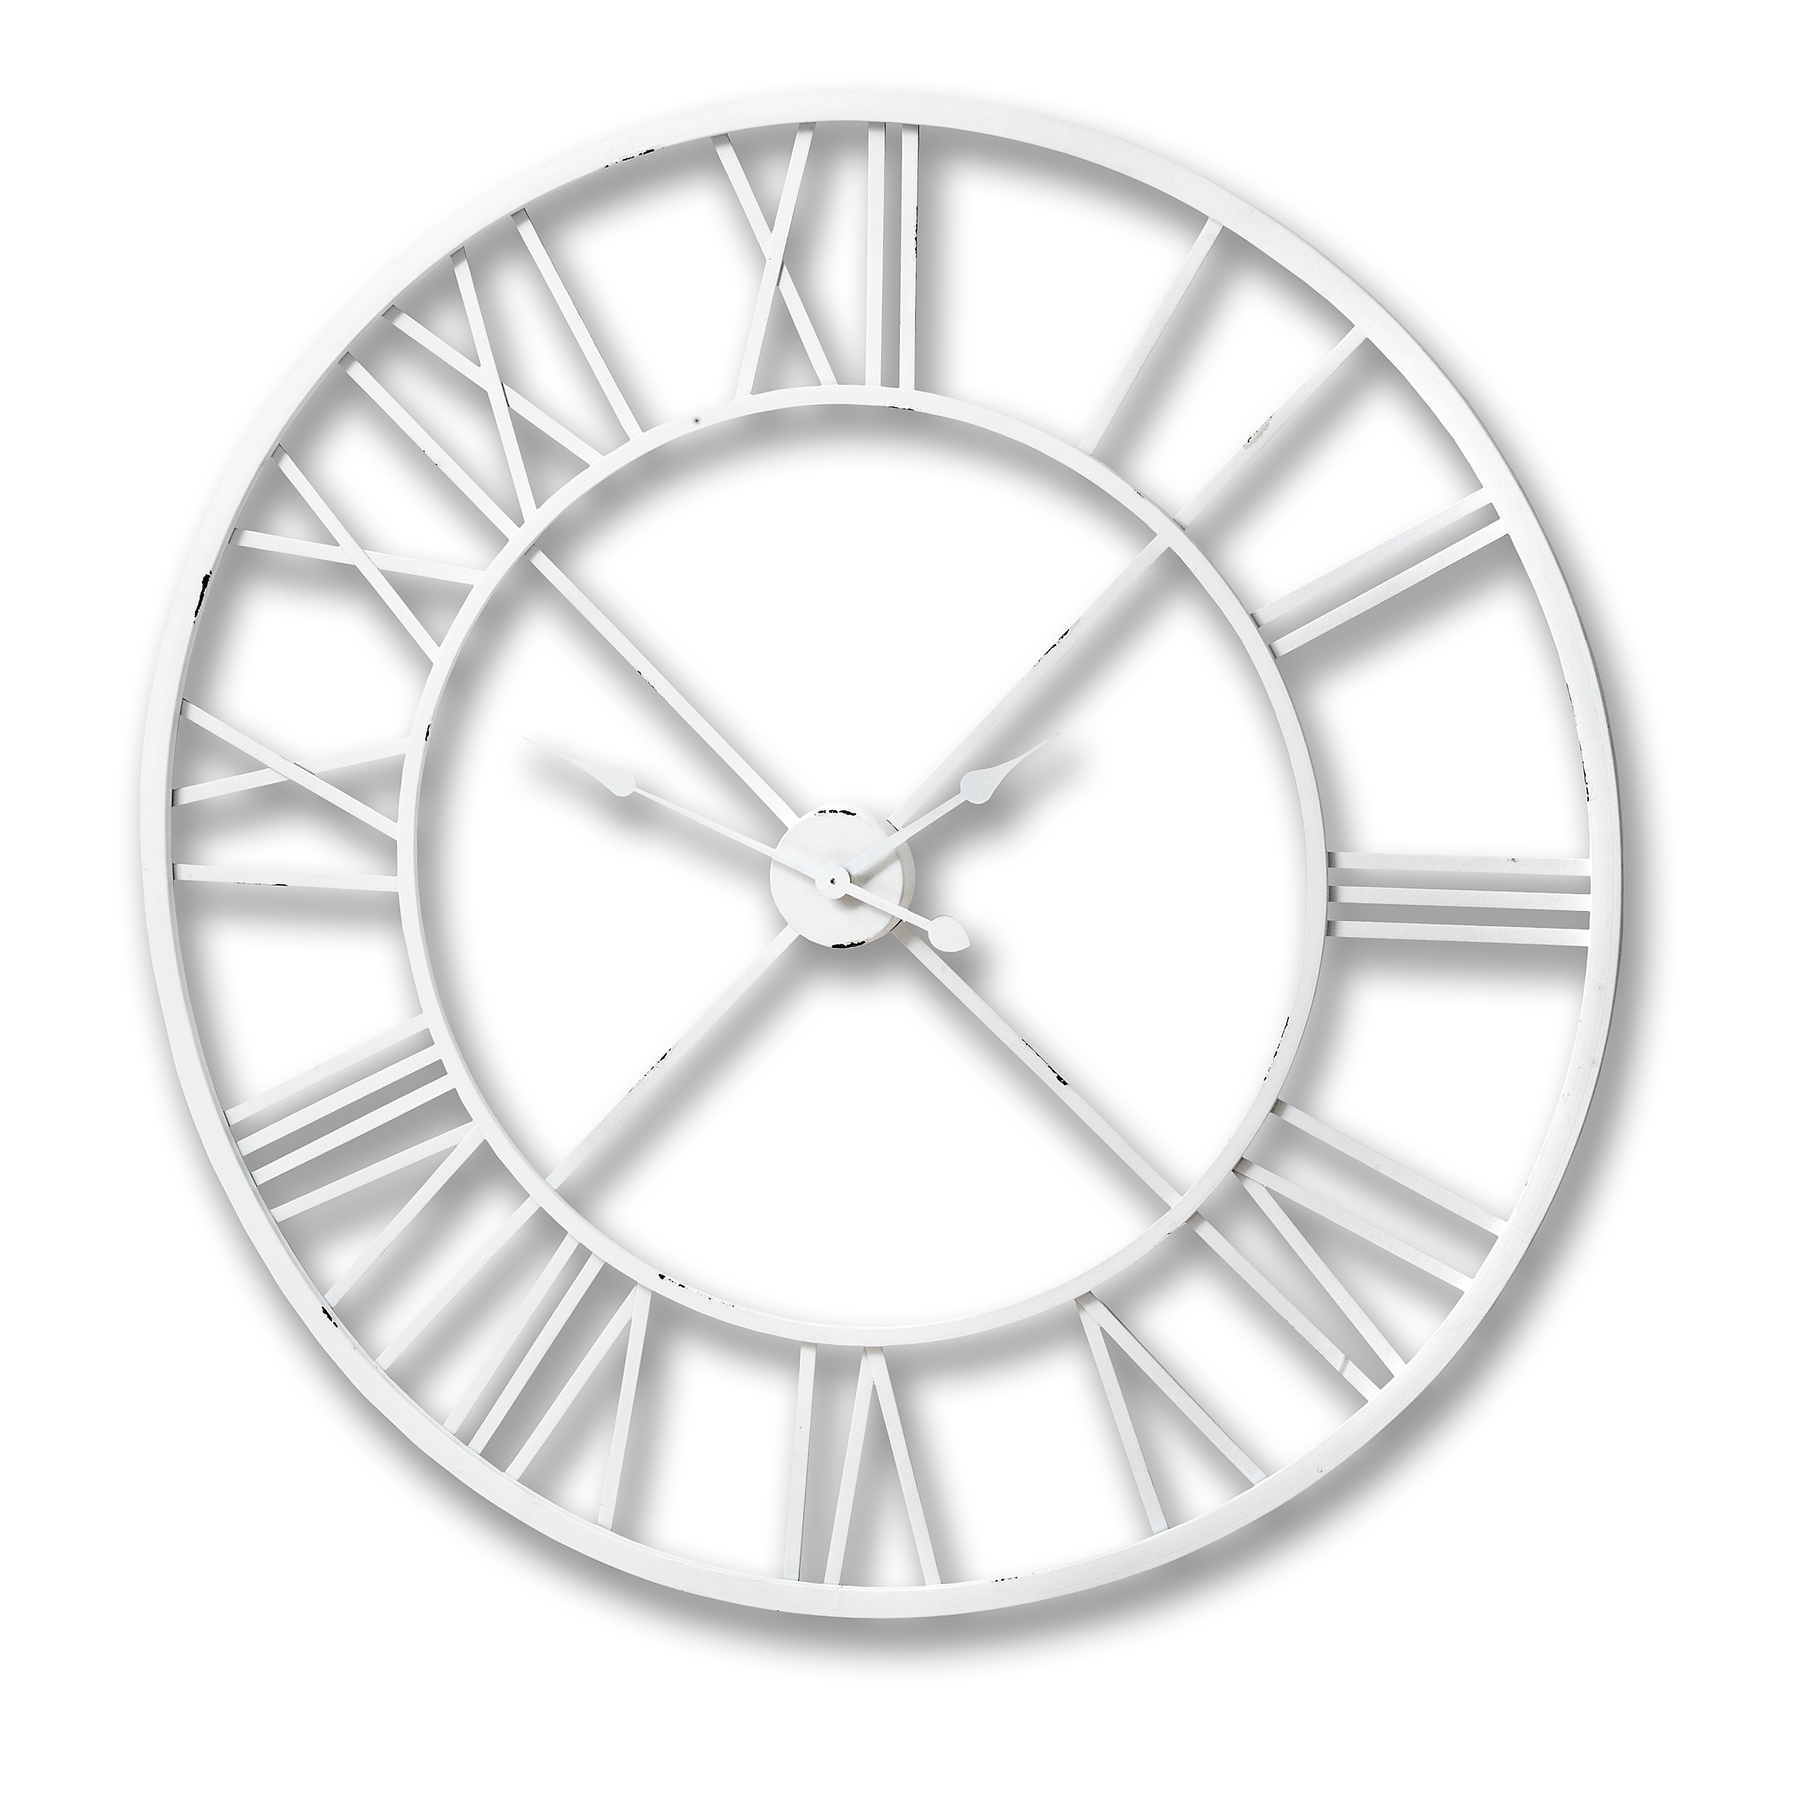 Antique White Roman Numeral Wall Clock From Hill Interiors